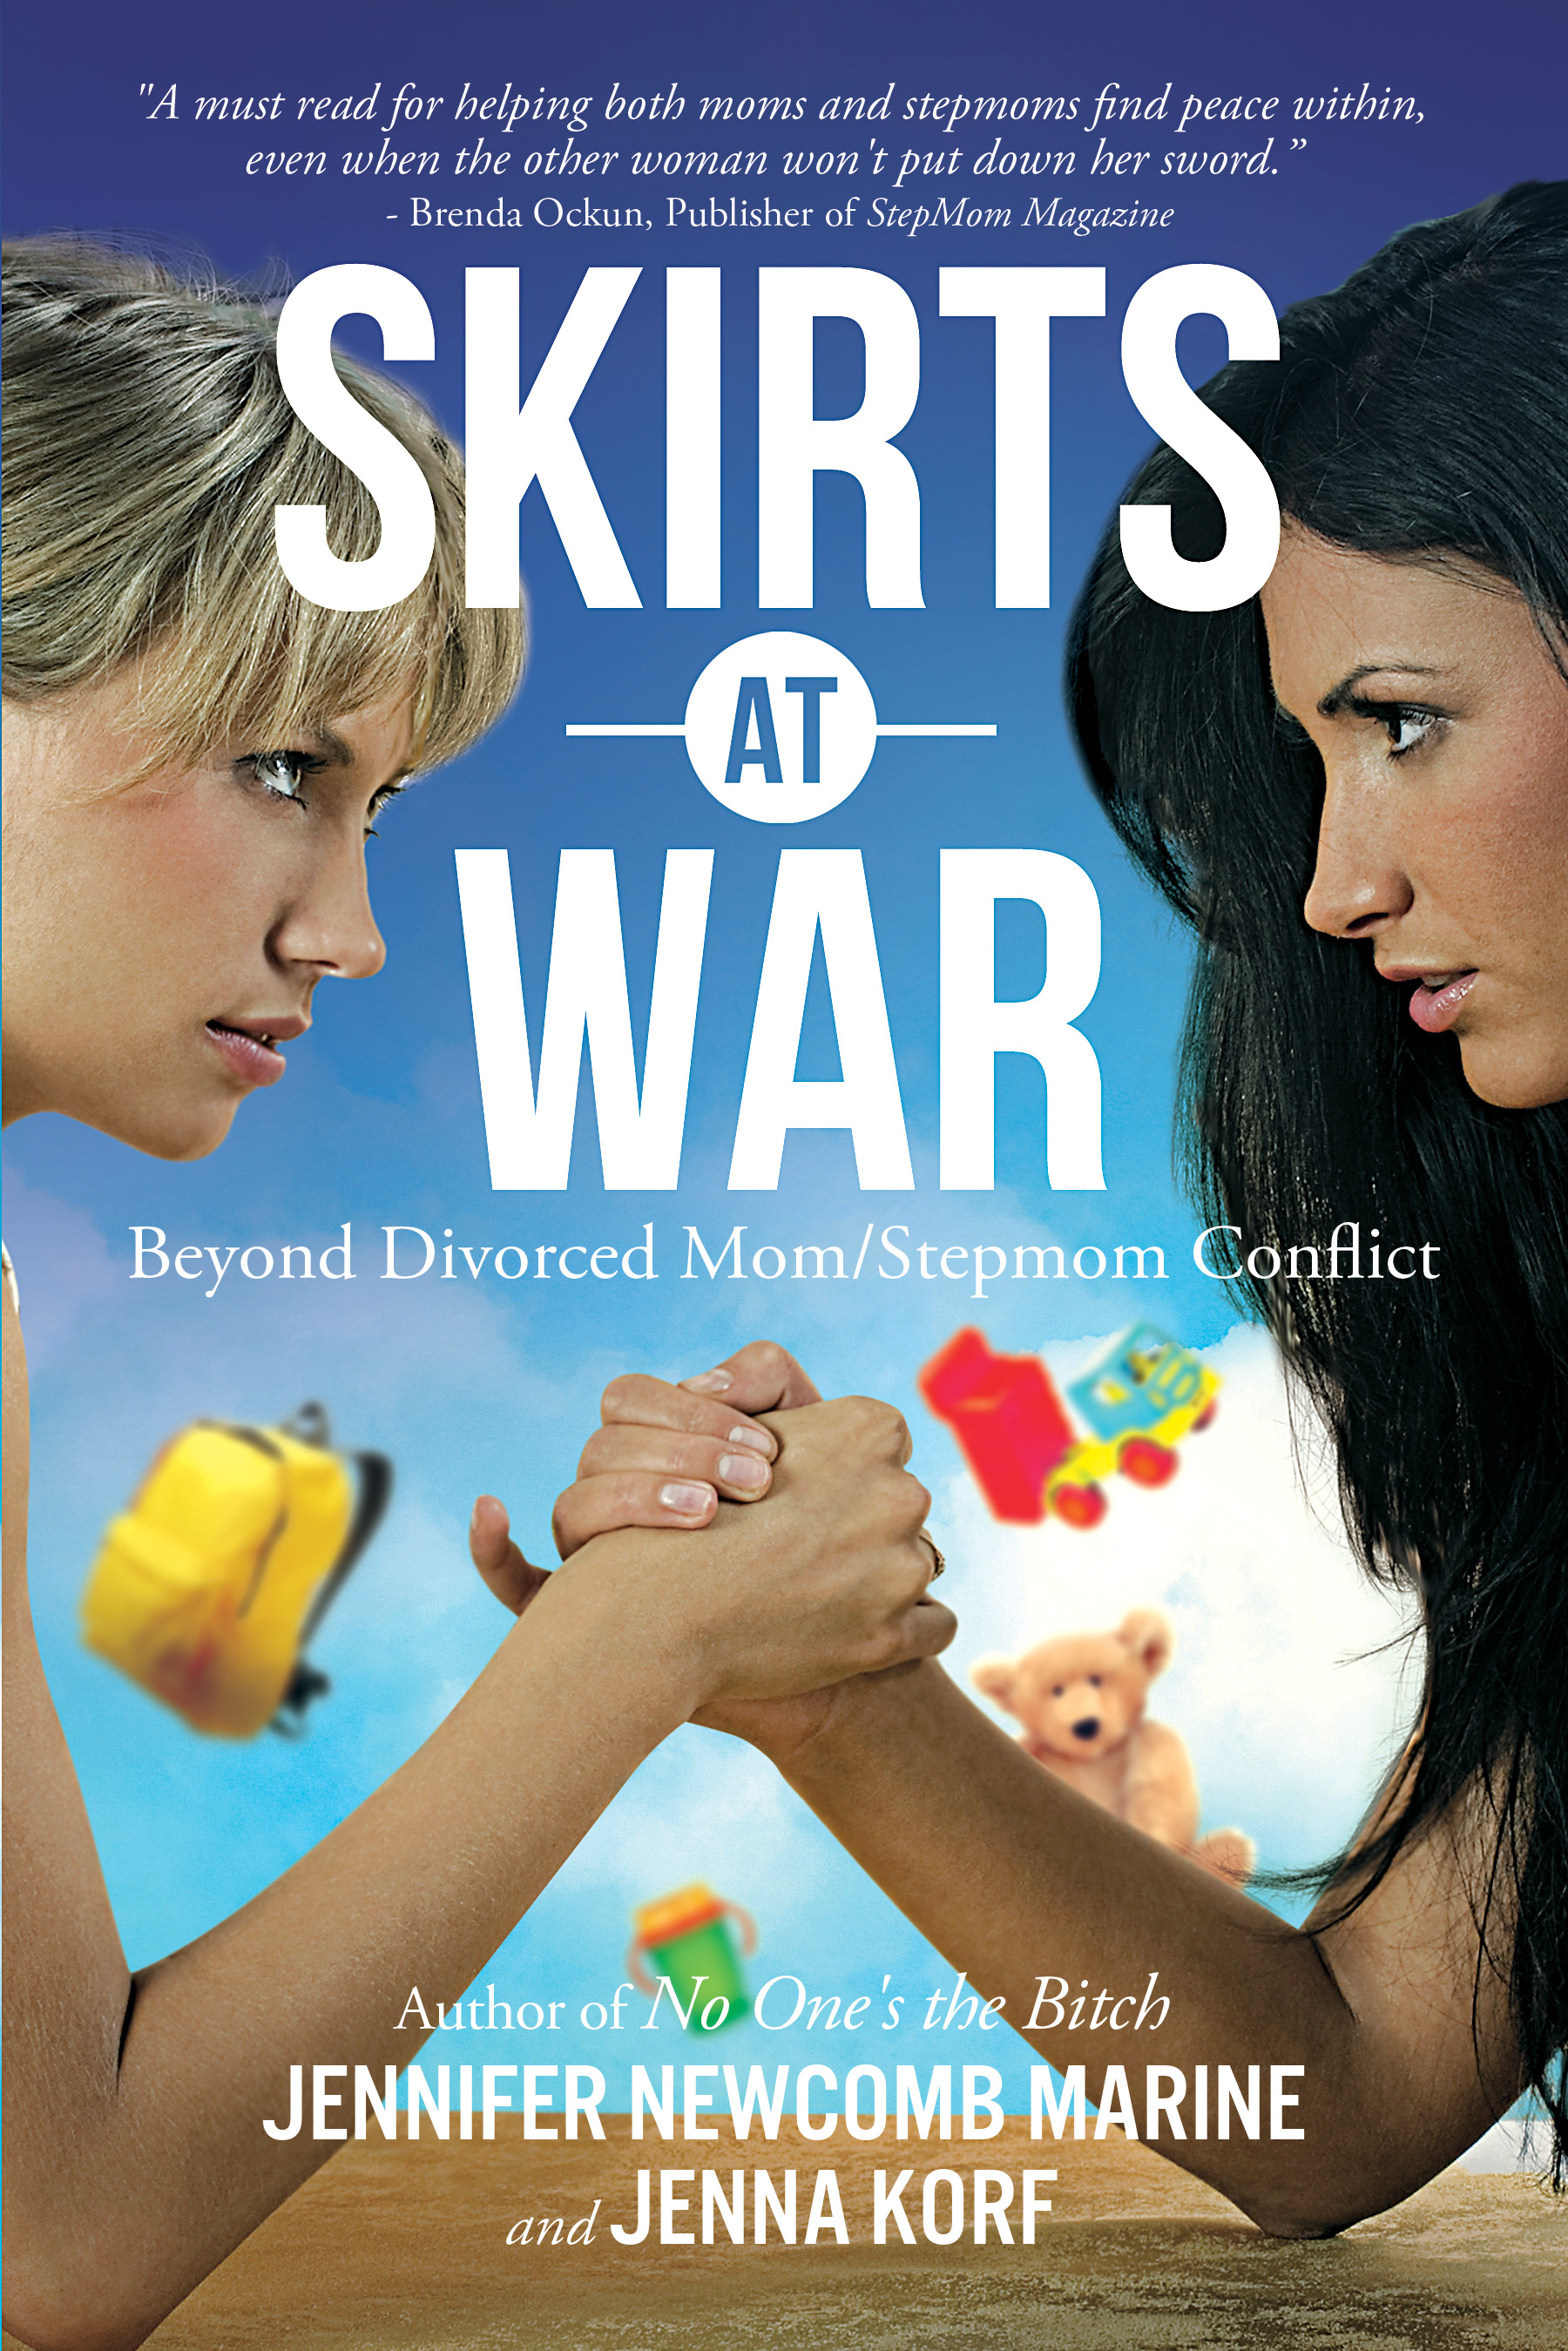 Skirts at War_big-high-res-cover.jpg